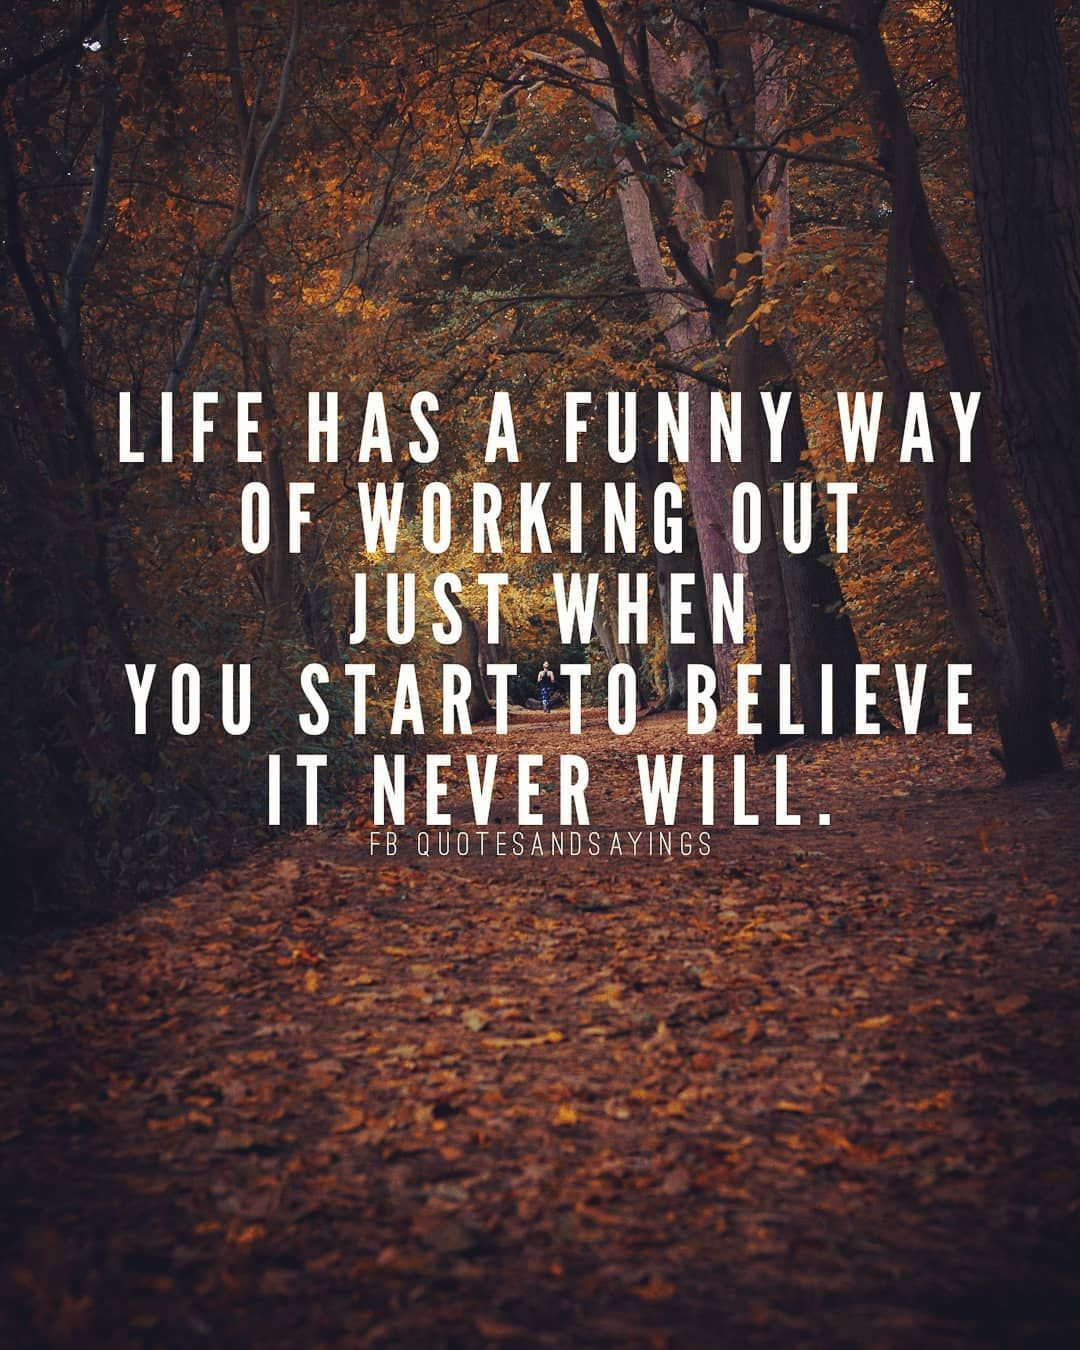 Image May Contain Outdoor And Nature Text That Says Life Has A Funny Way Of Workin Funny Inspirational Quotes Funny Motivational Quotes Encouragement Quotes